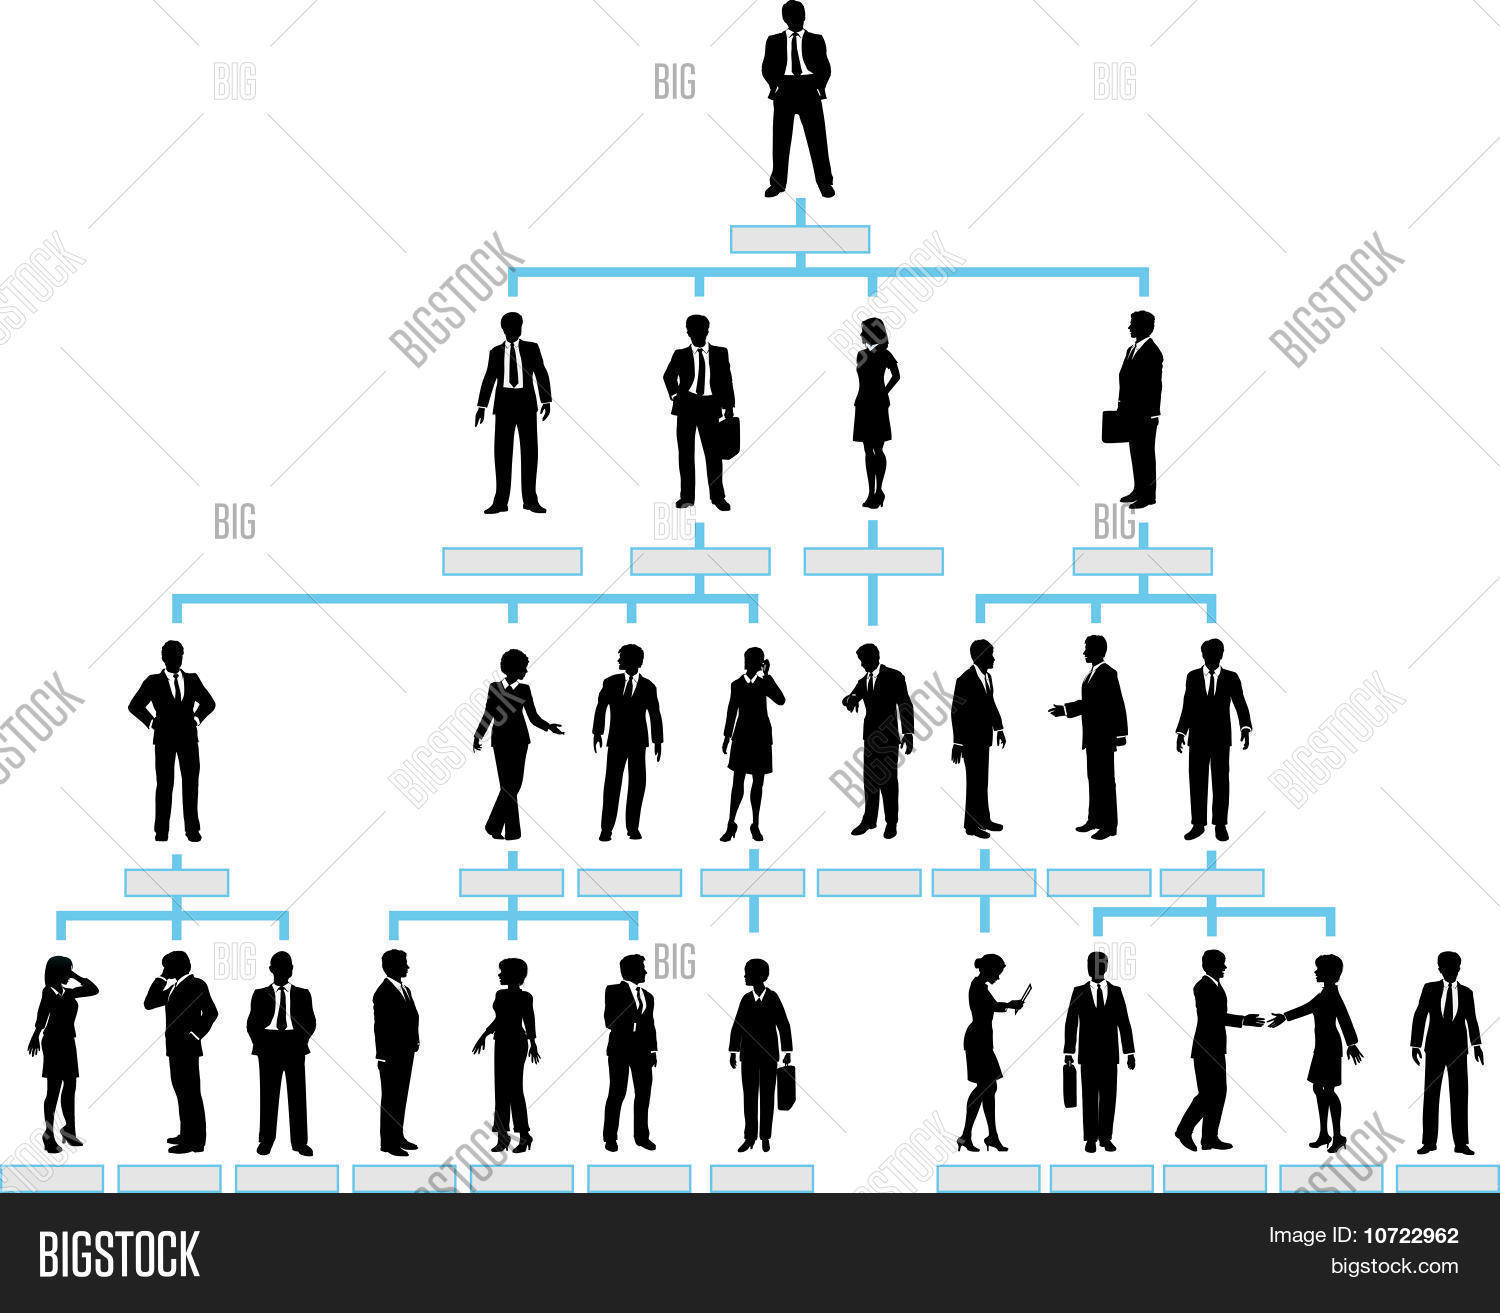 Organizational Corporate Hierarchy Chart Of A Company Silhouette People